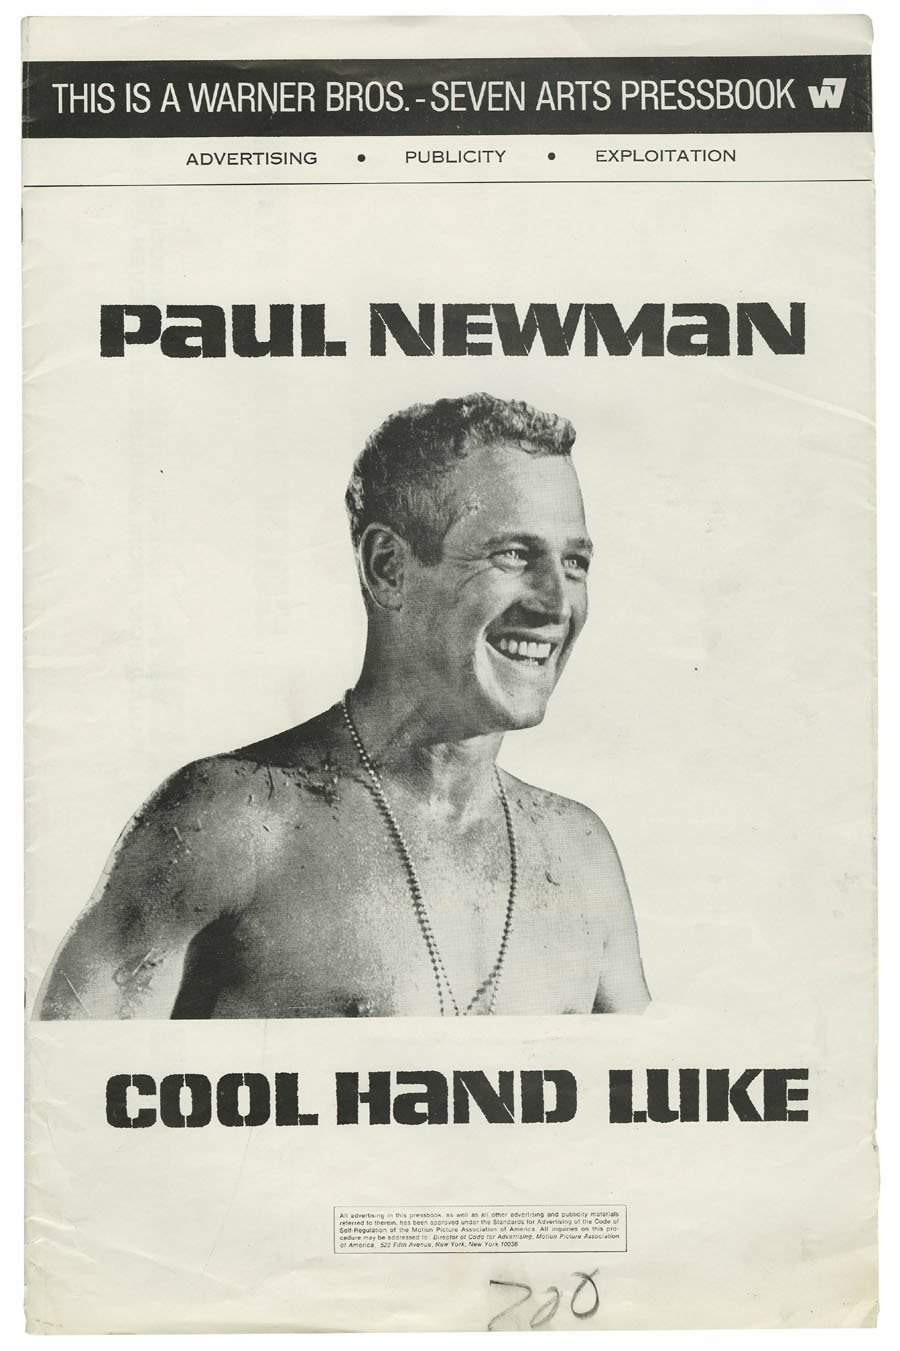 an analysis of the character of luke in the movie cool hand luke Cool hand luke has a distinct soundtrack that features original music by   simon and garfunkel to depict the inner psychology of the film's lead character   who analyzed the film's religious symbolism, political relevance,.